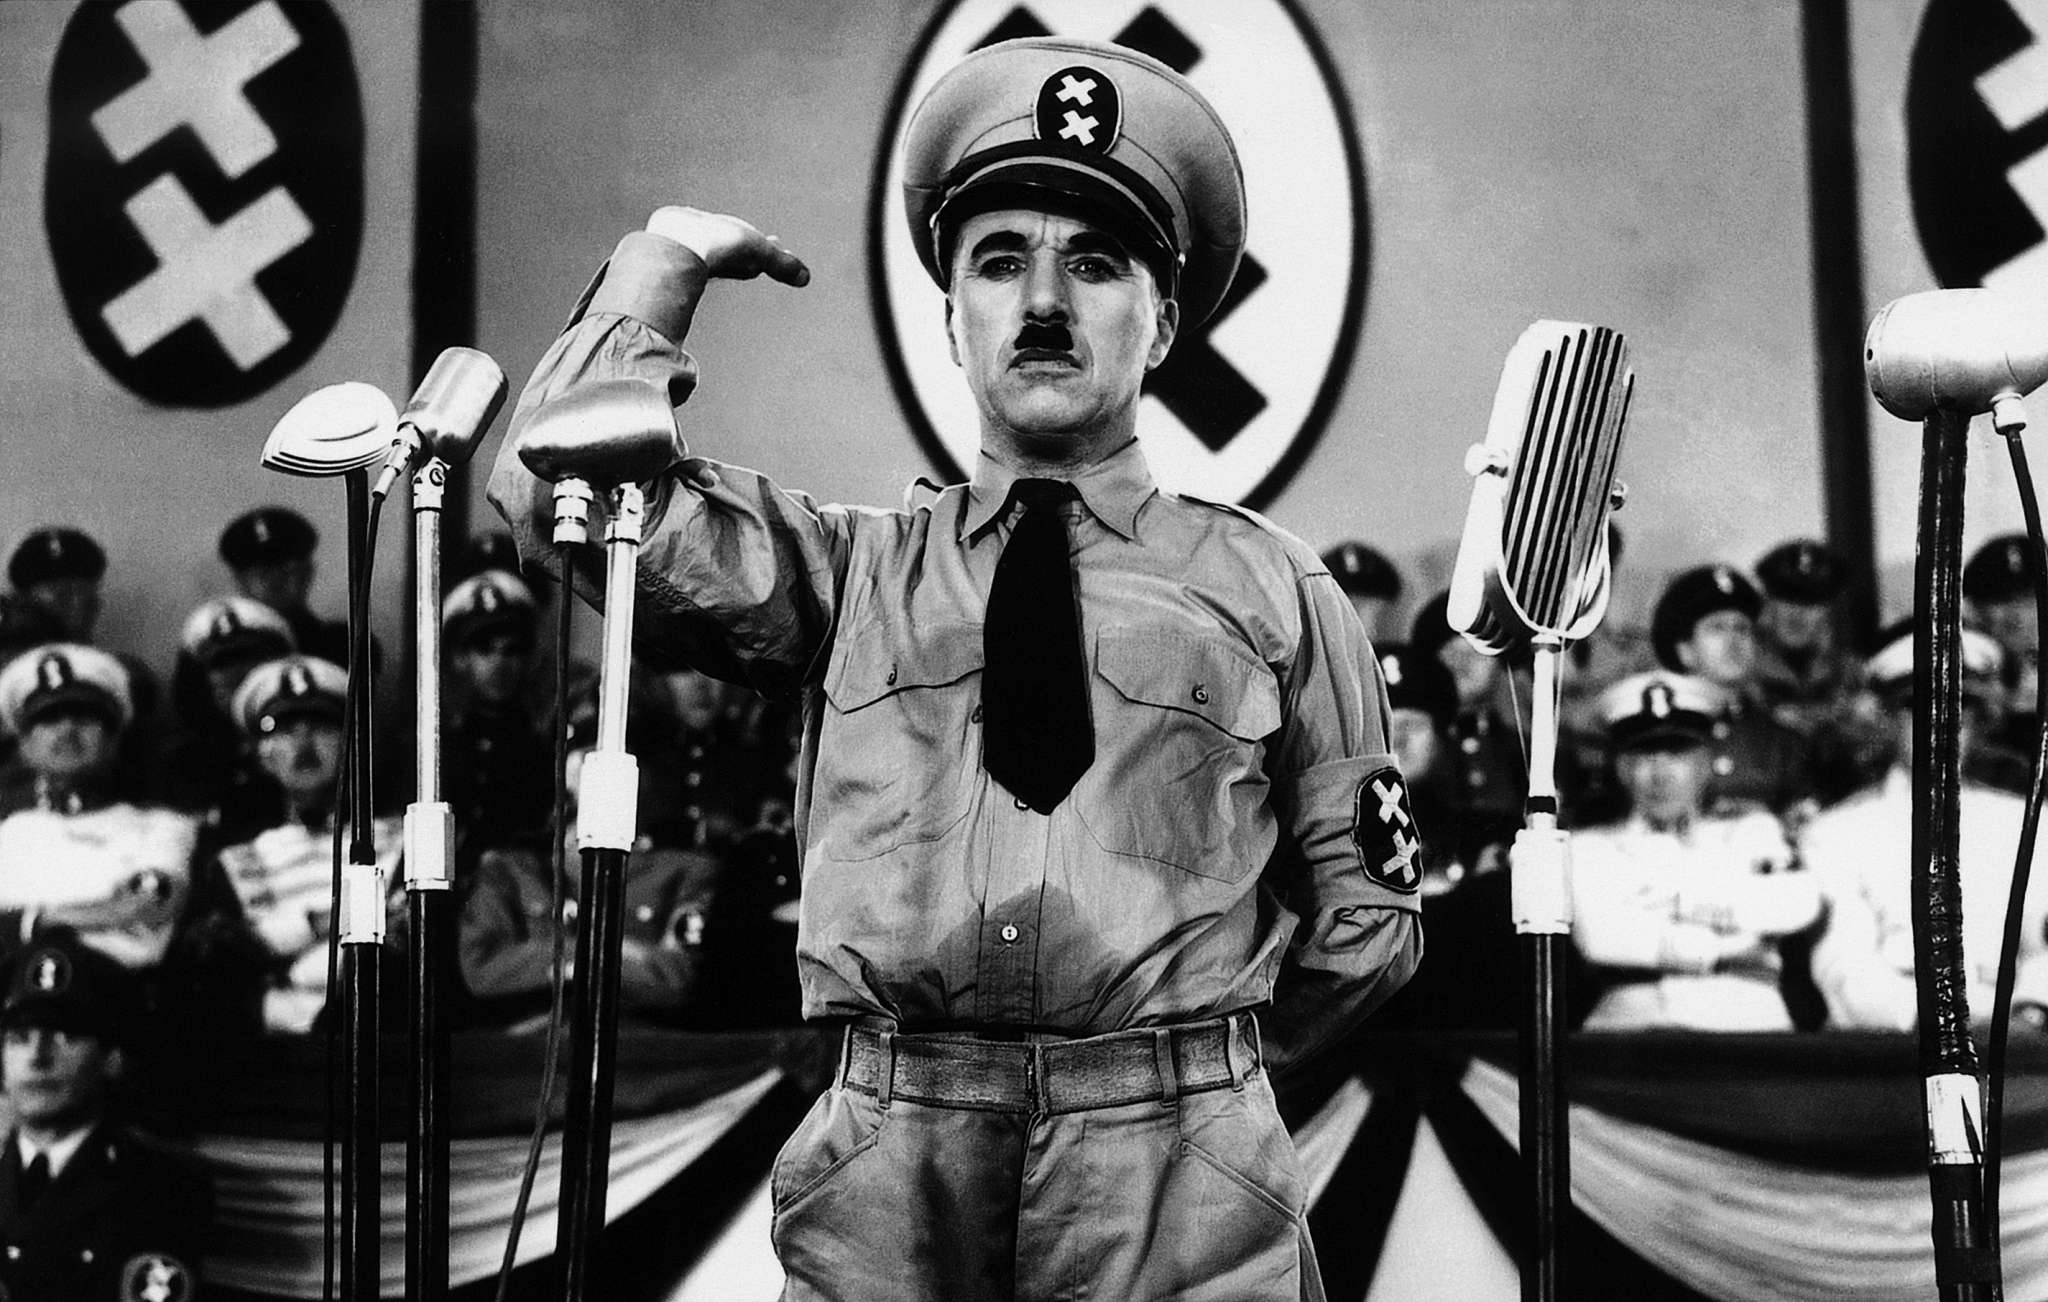 The Great Dictator, 1940 – Charlie Chaplin